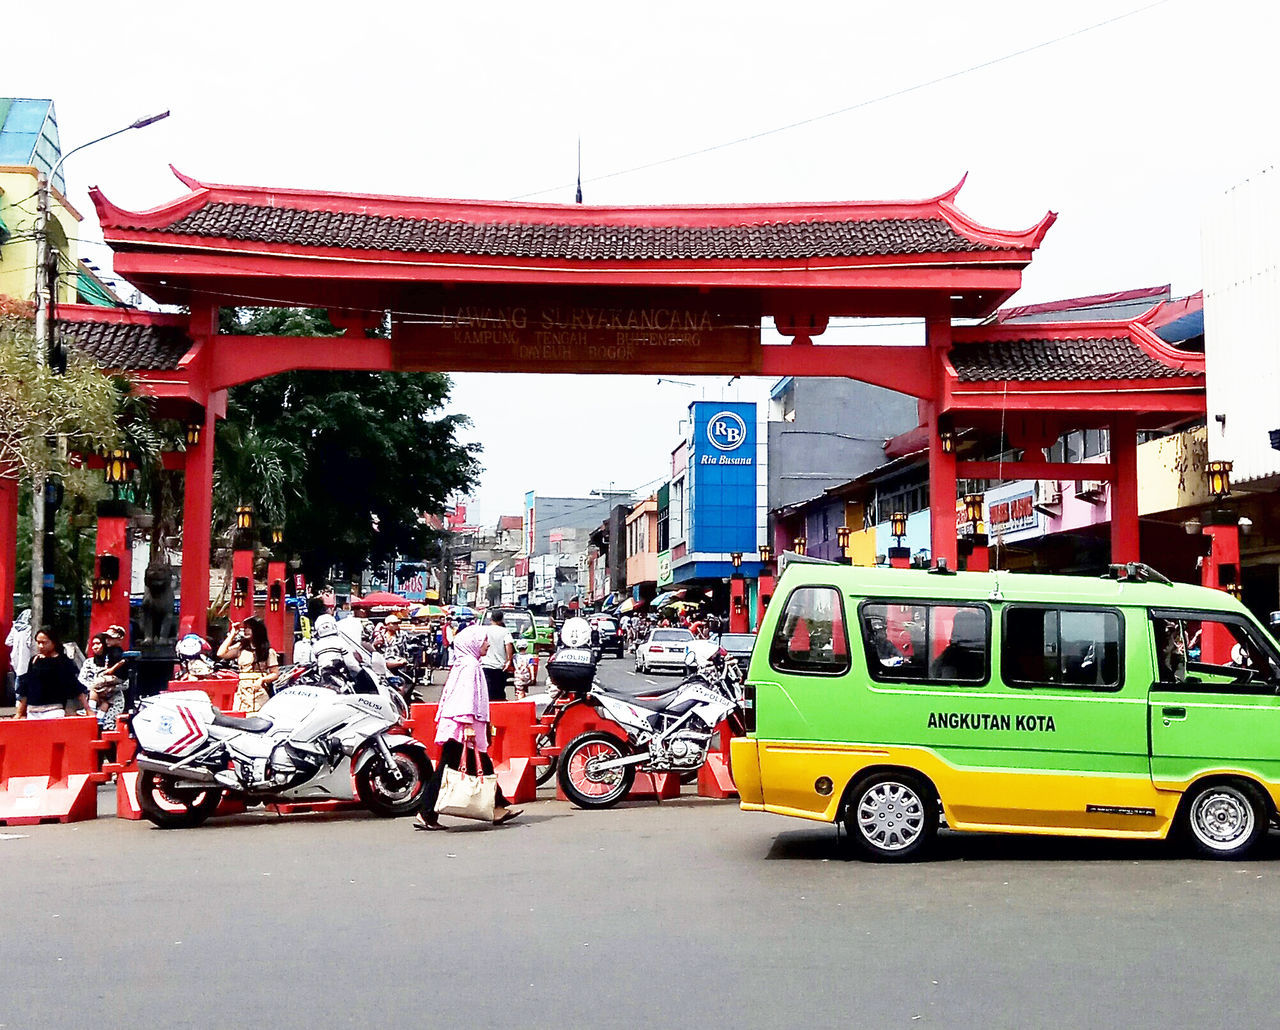 Gate in Chinese settlement Architecture Building Exterior Built Structure Day Land Vehicle Large Group Of People Men Outdoors Real People Red Streetphotography Transportation